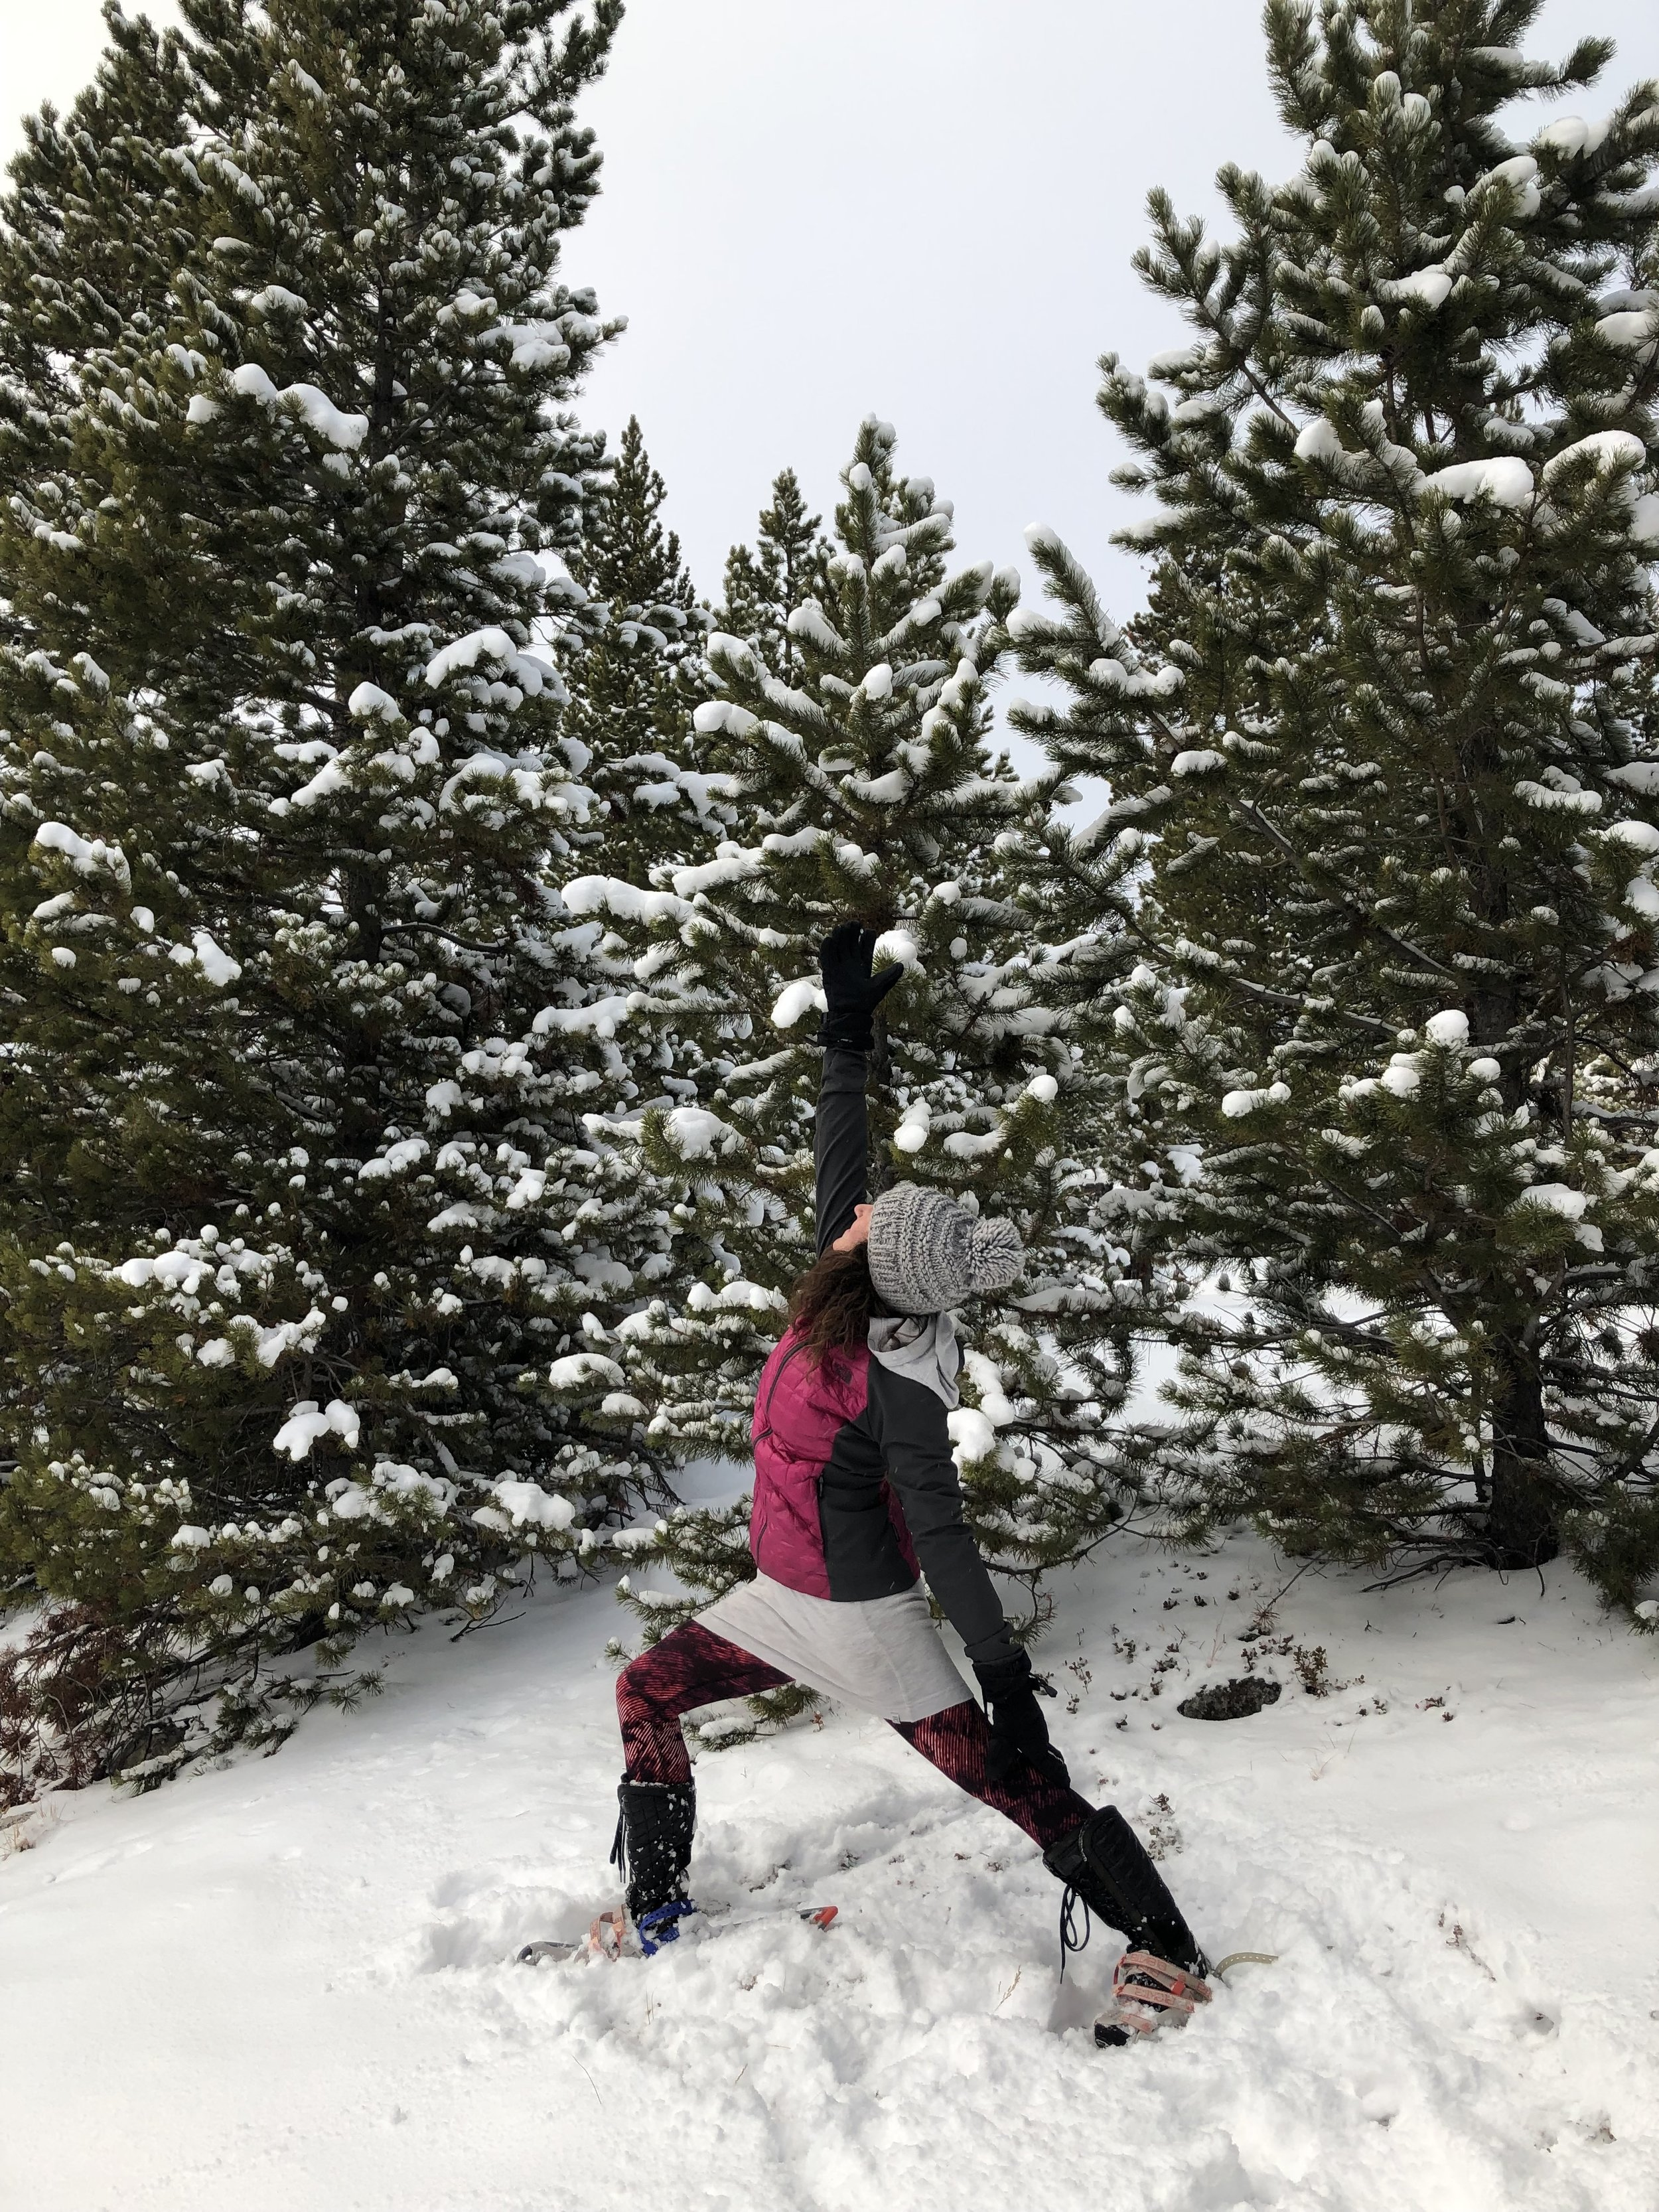 "TAKE IT OUTDOORS for SNOW FLOW - A snowshoe + yoga experienceWhat people are saying about their experience with me:""If you are looking for an amazing and fun experience- don't look any further! We had AMAZING time with Angie!""""Angie is a wonderful person who spreads the positive energy and makes you feel like you are an old friend. Great guide and yoga instructor! """"Angie was our first guide with her trusty dog, Hans. She was so wonderful about helping us get our straps right with our snowshoes and making sure we were able to hike well in them. She's also very sweet and funny.""""She took us for snowshoe hike to a magical place with beautiful views in the serene environment - it was breathtaking! She gave us all the instructions we needed and doing yoga poses in snowshoes was so much FUN!:-) We loved it! We will definitely be back for next experiences with Angie :-). Highly recommended!""Contact me for more information and to set up your private SNOW FLOW experience for your small group today!"